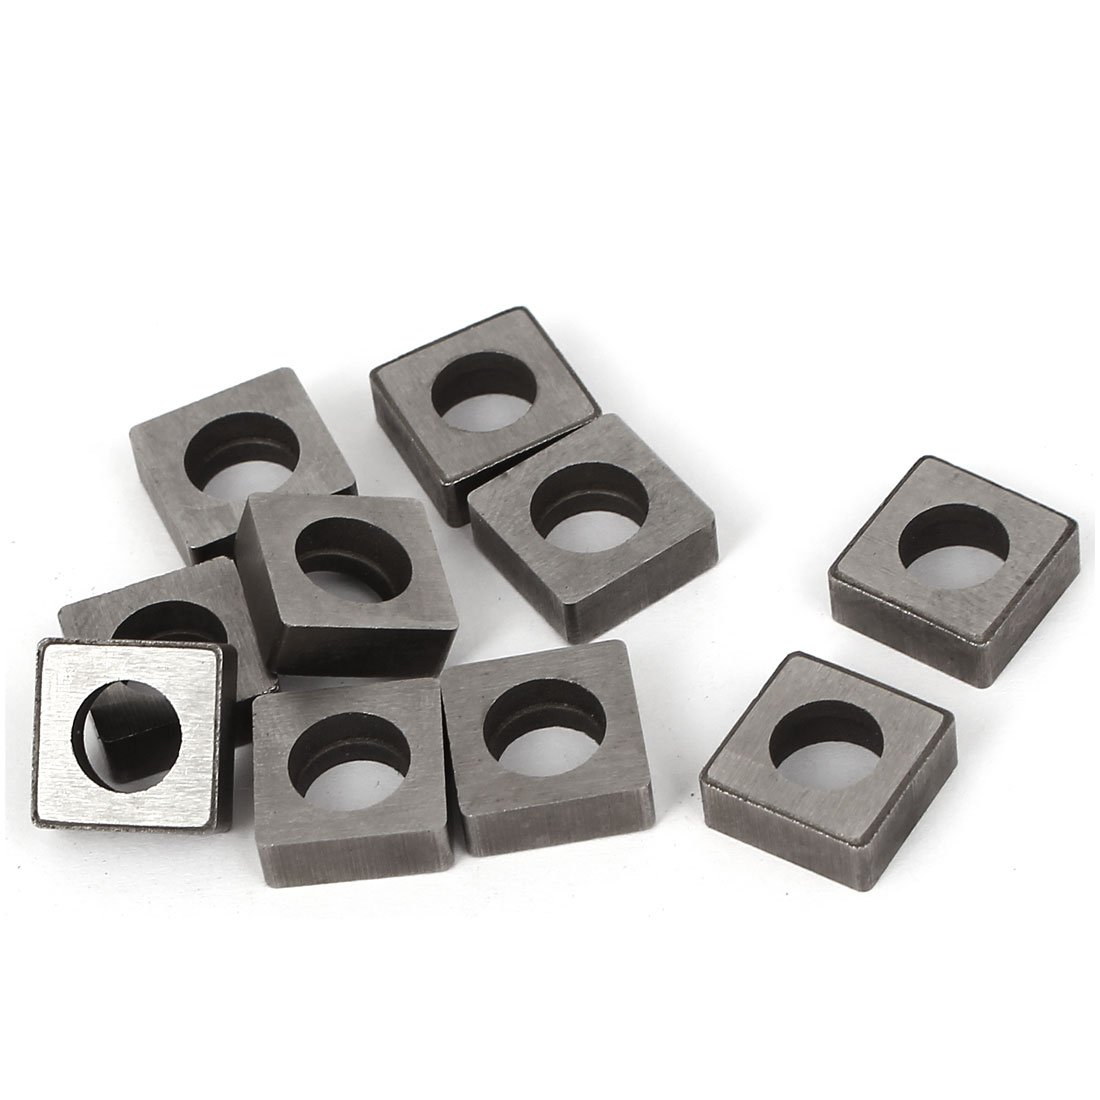 uxcell Square Shape Carbide Insert Cutter MS1204 10 Pcs for Woodturning Tools a16010500ux0261